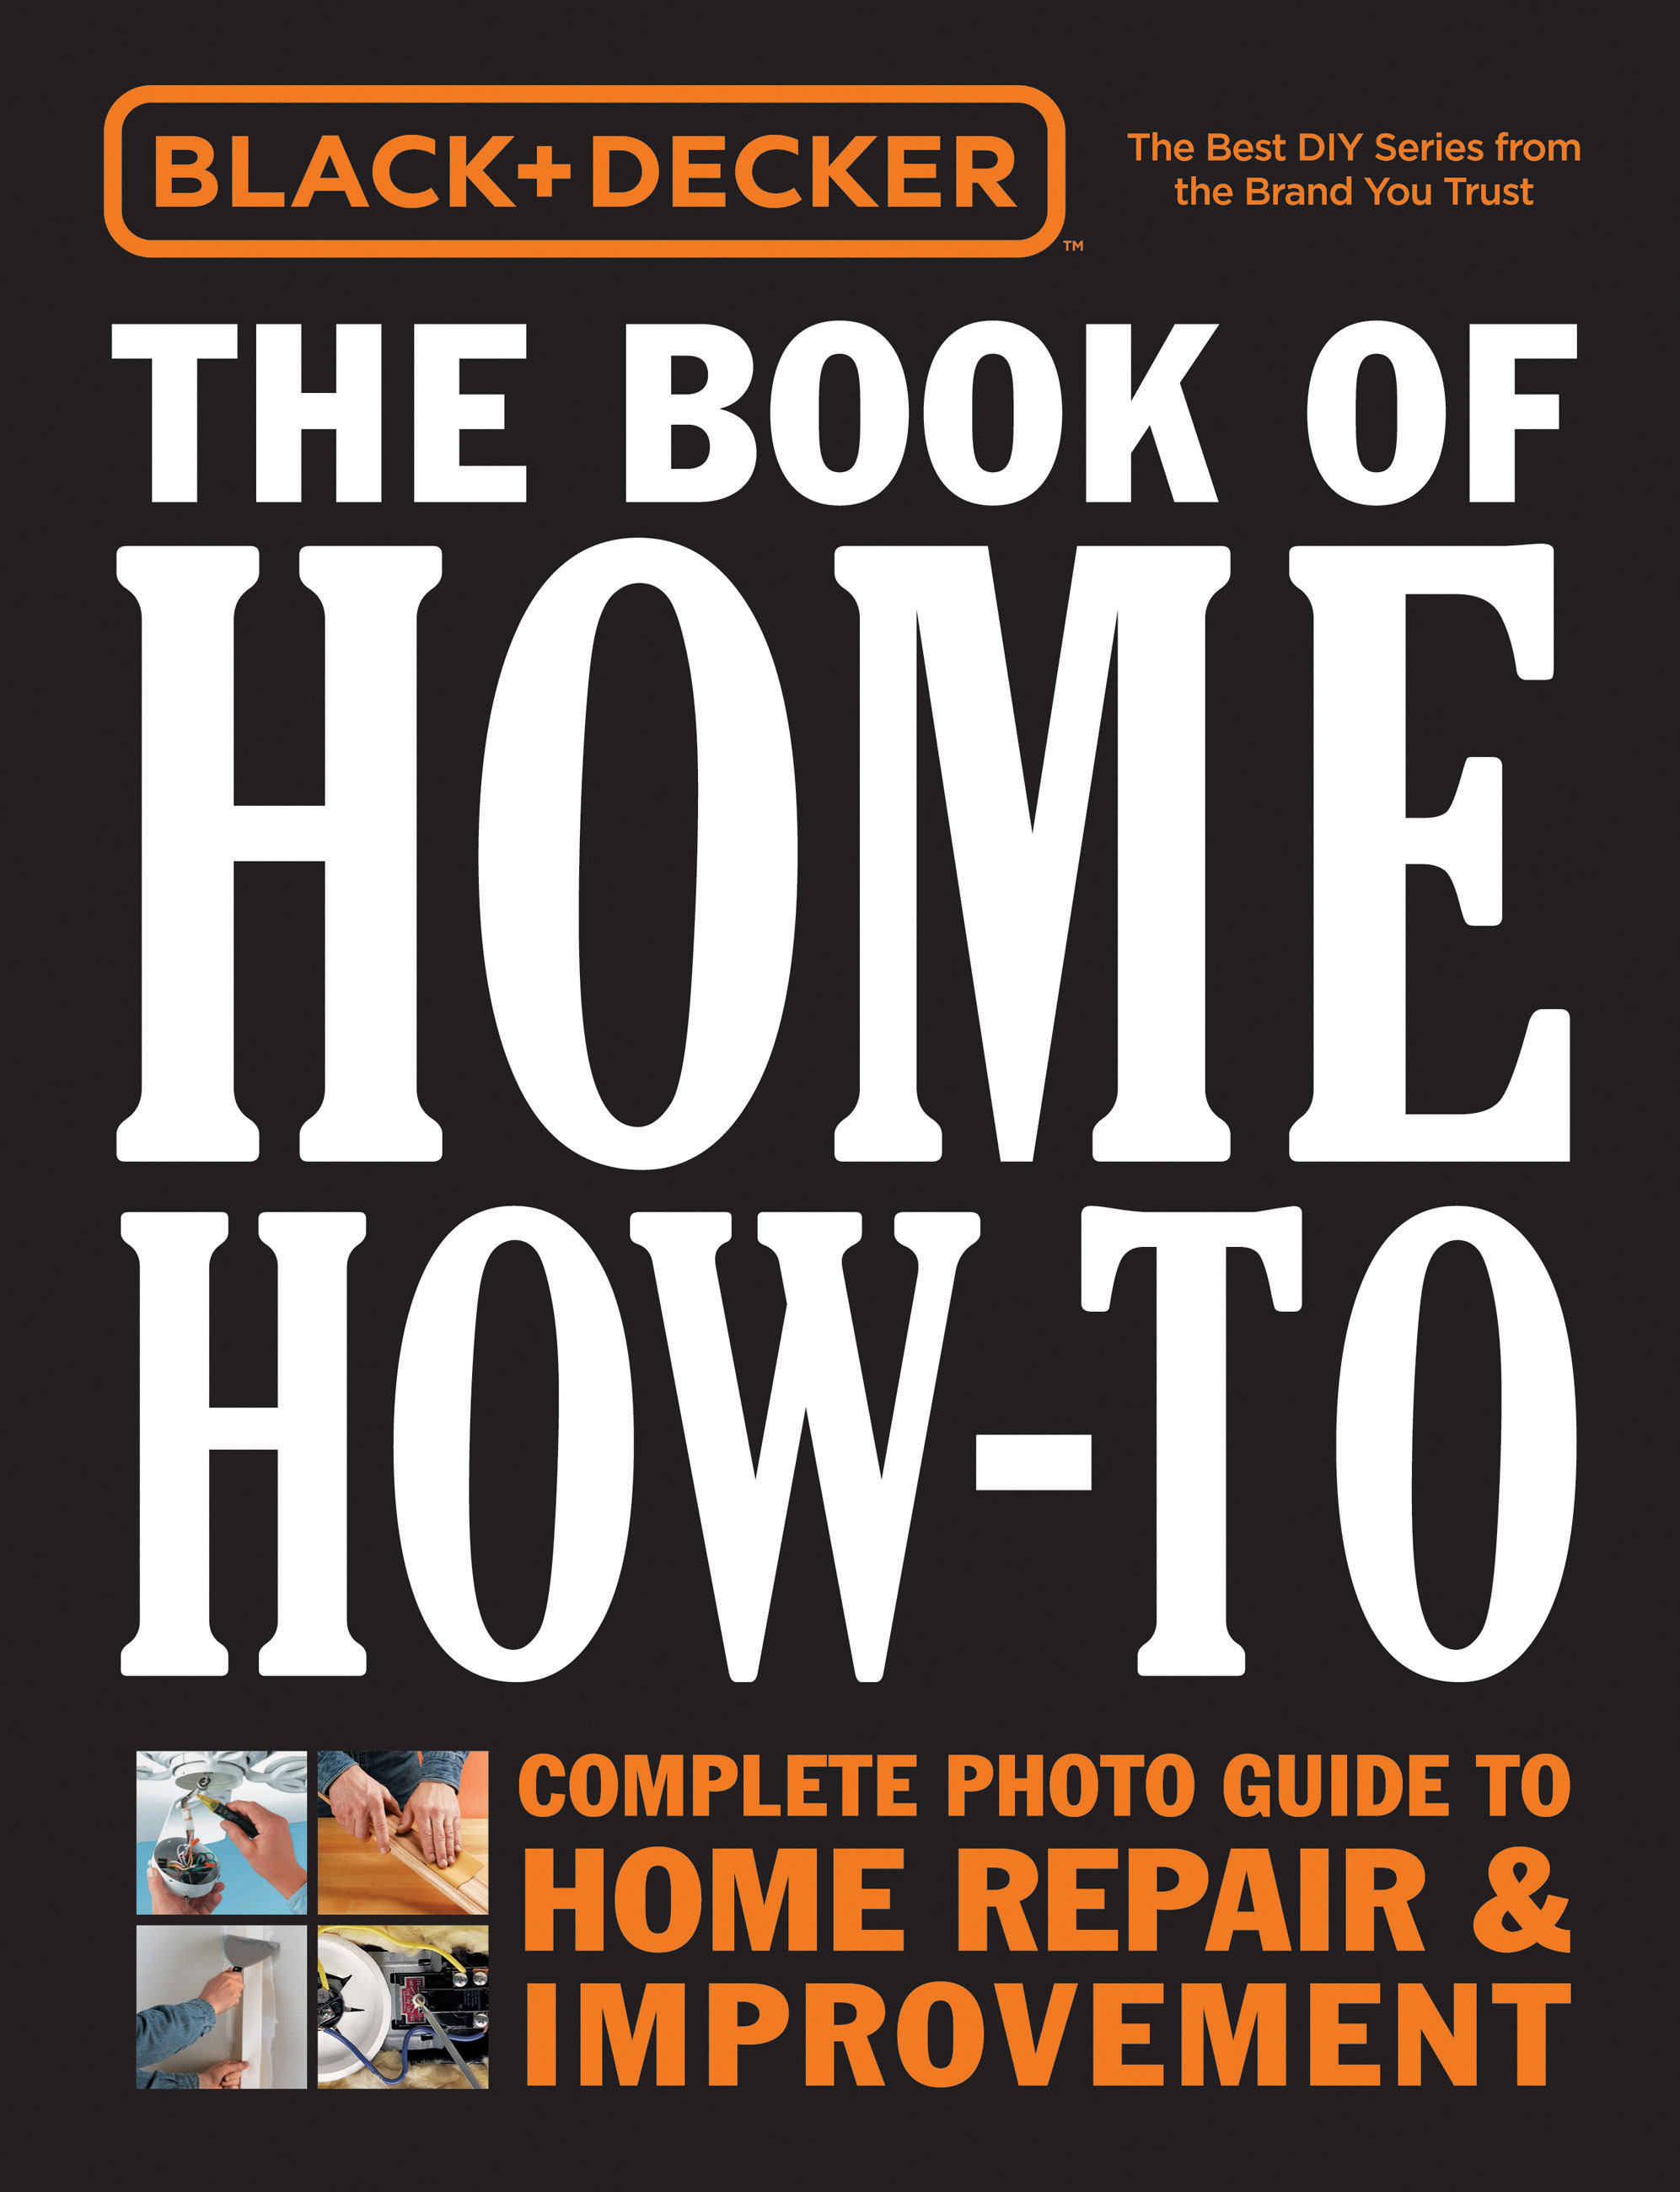 Black & Decker The Book of Home How-to, Updated 2nd Edition The Complete Photo Guide to Home Repair & Improvement